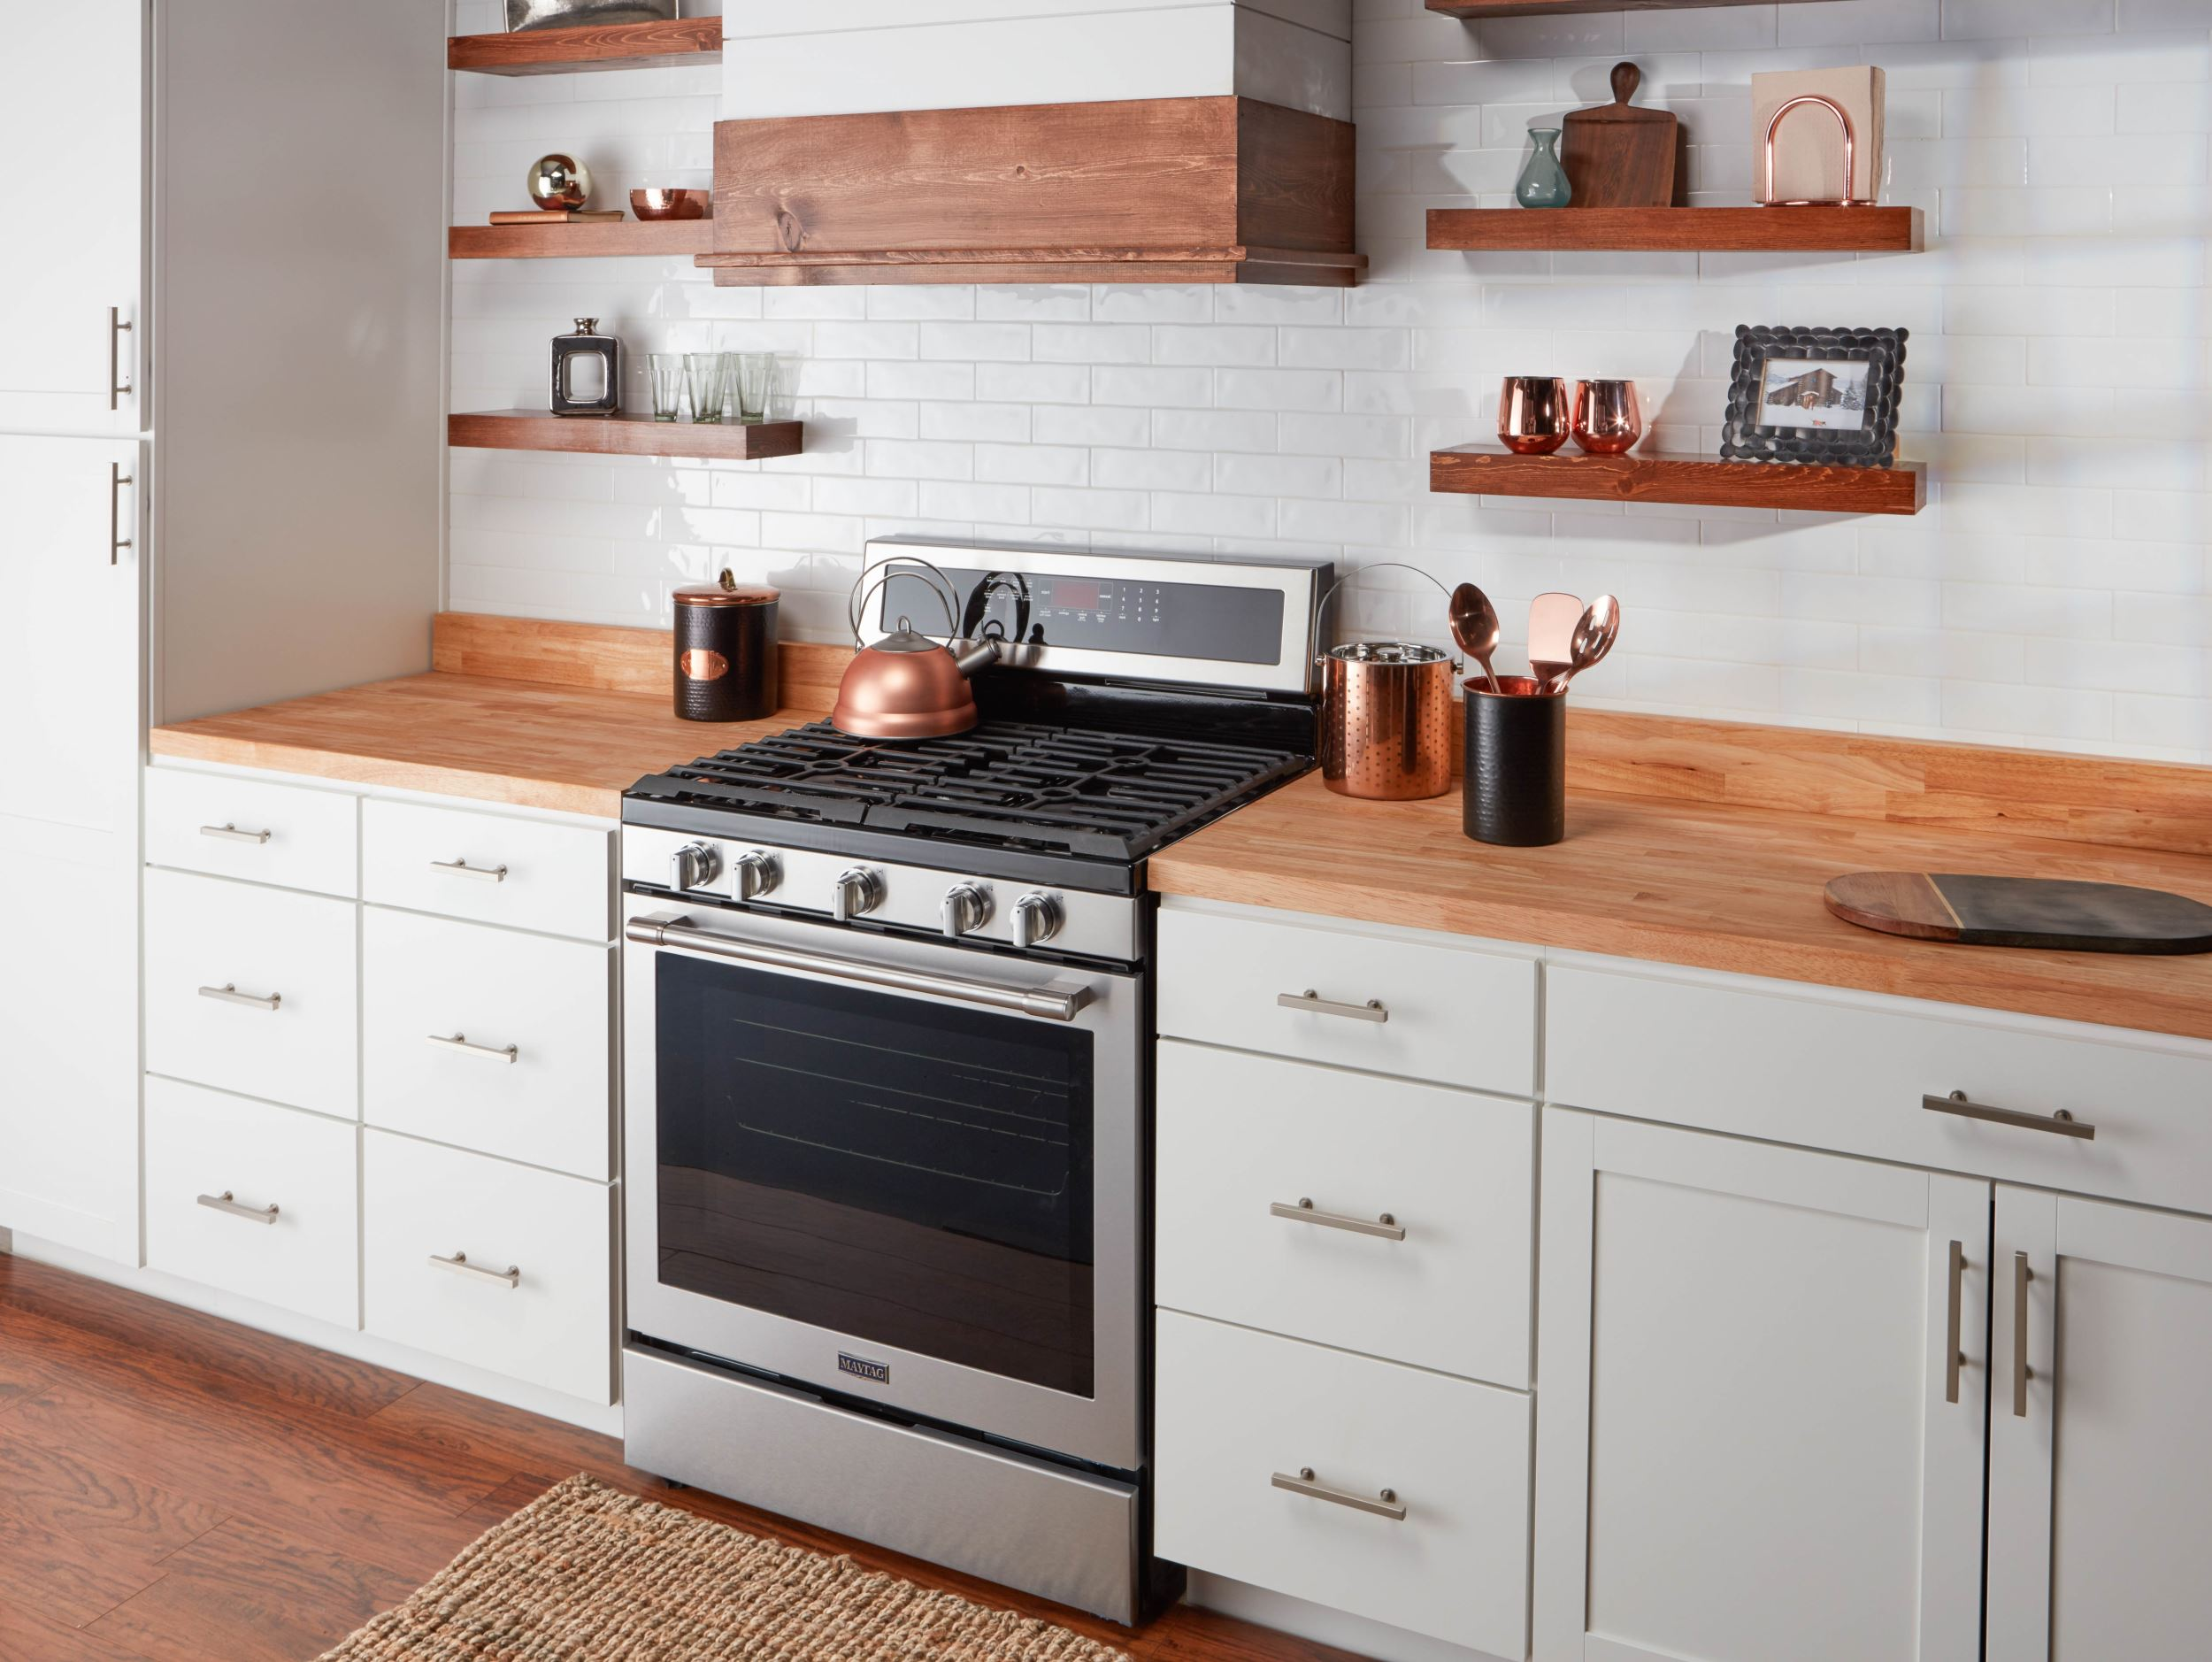 Vt Centerpointe Is Available In Your Choice Of Two Wood Offerings Hevea And Acacia What S More Countertops Come Unfinished